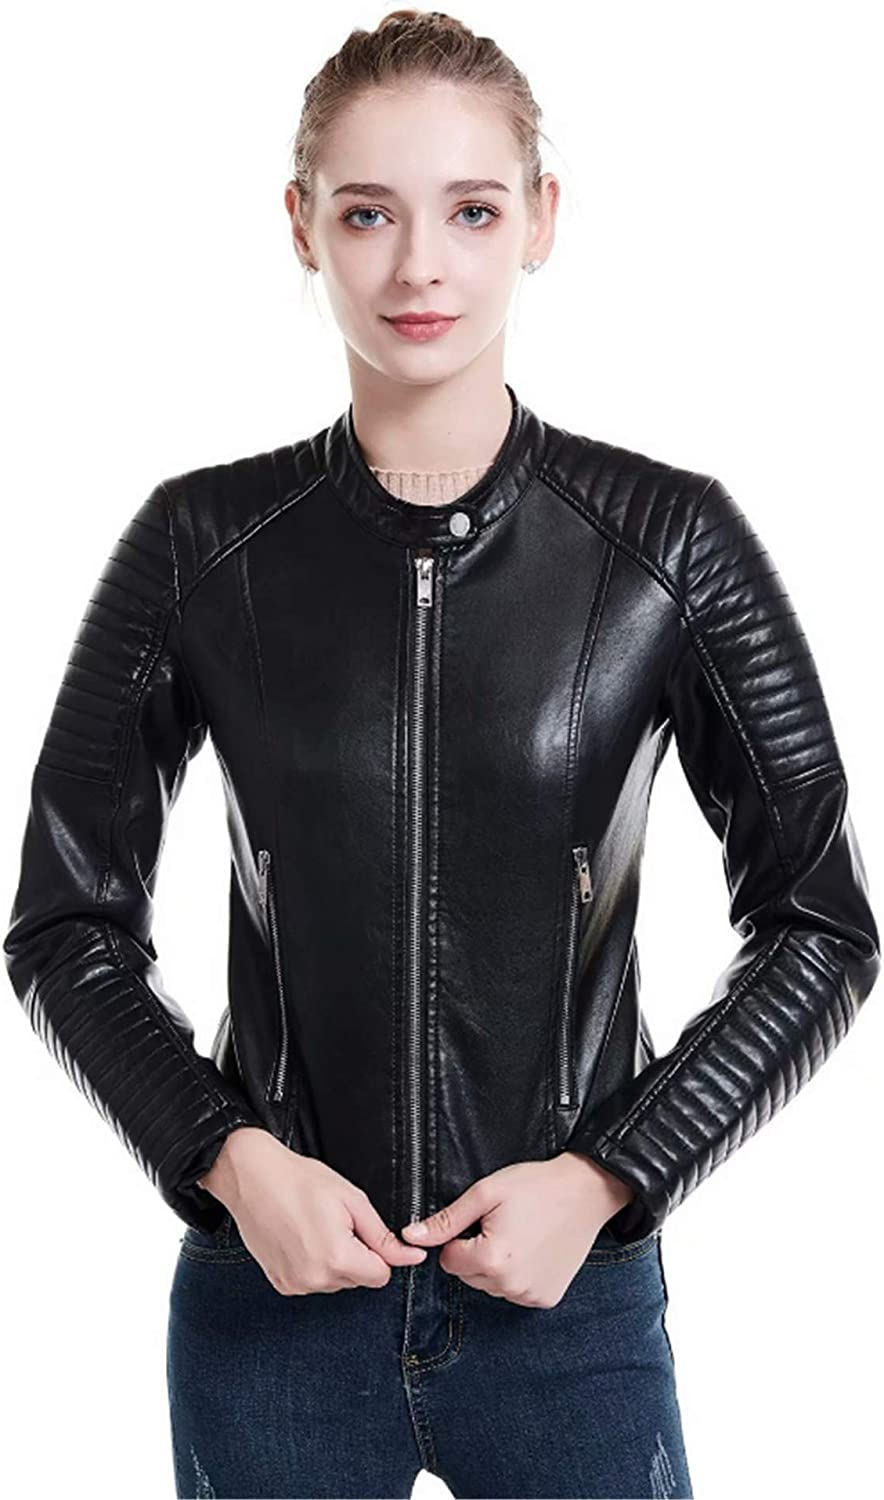 EverNight Womens Faux Leather Jackets,Moto Biker Slim Fit Short Casual Round Neck Coats,Spring Fall Outwear,Black,L